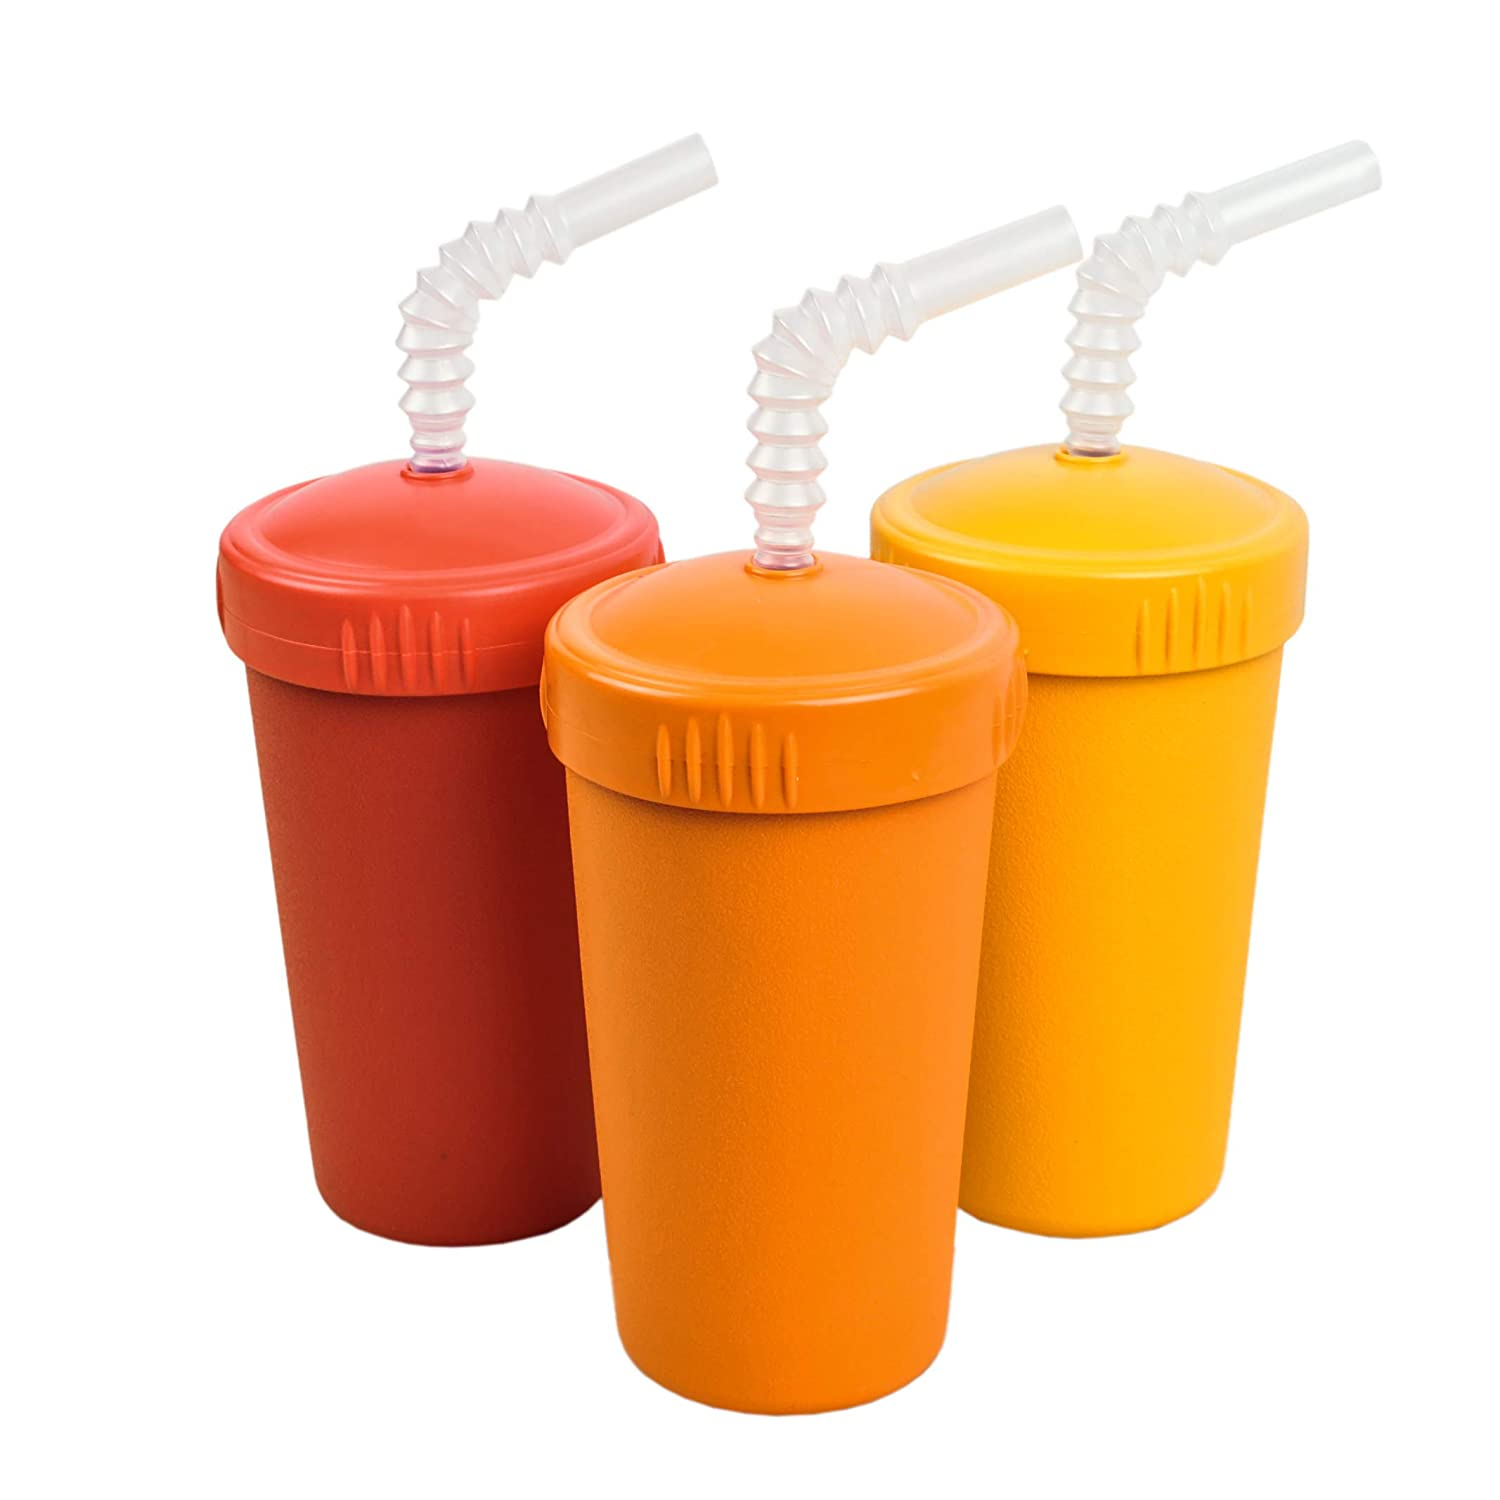 Re-Play Made in USA 3pk Straw Cups with Reversable Straw for Easy Baby, Toddler, Child Feeding - Red, Orange, Sunny Yellow (Fall)